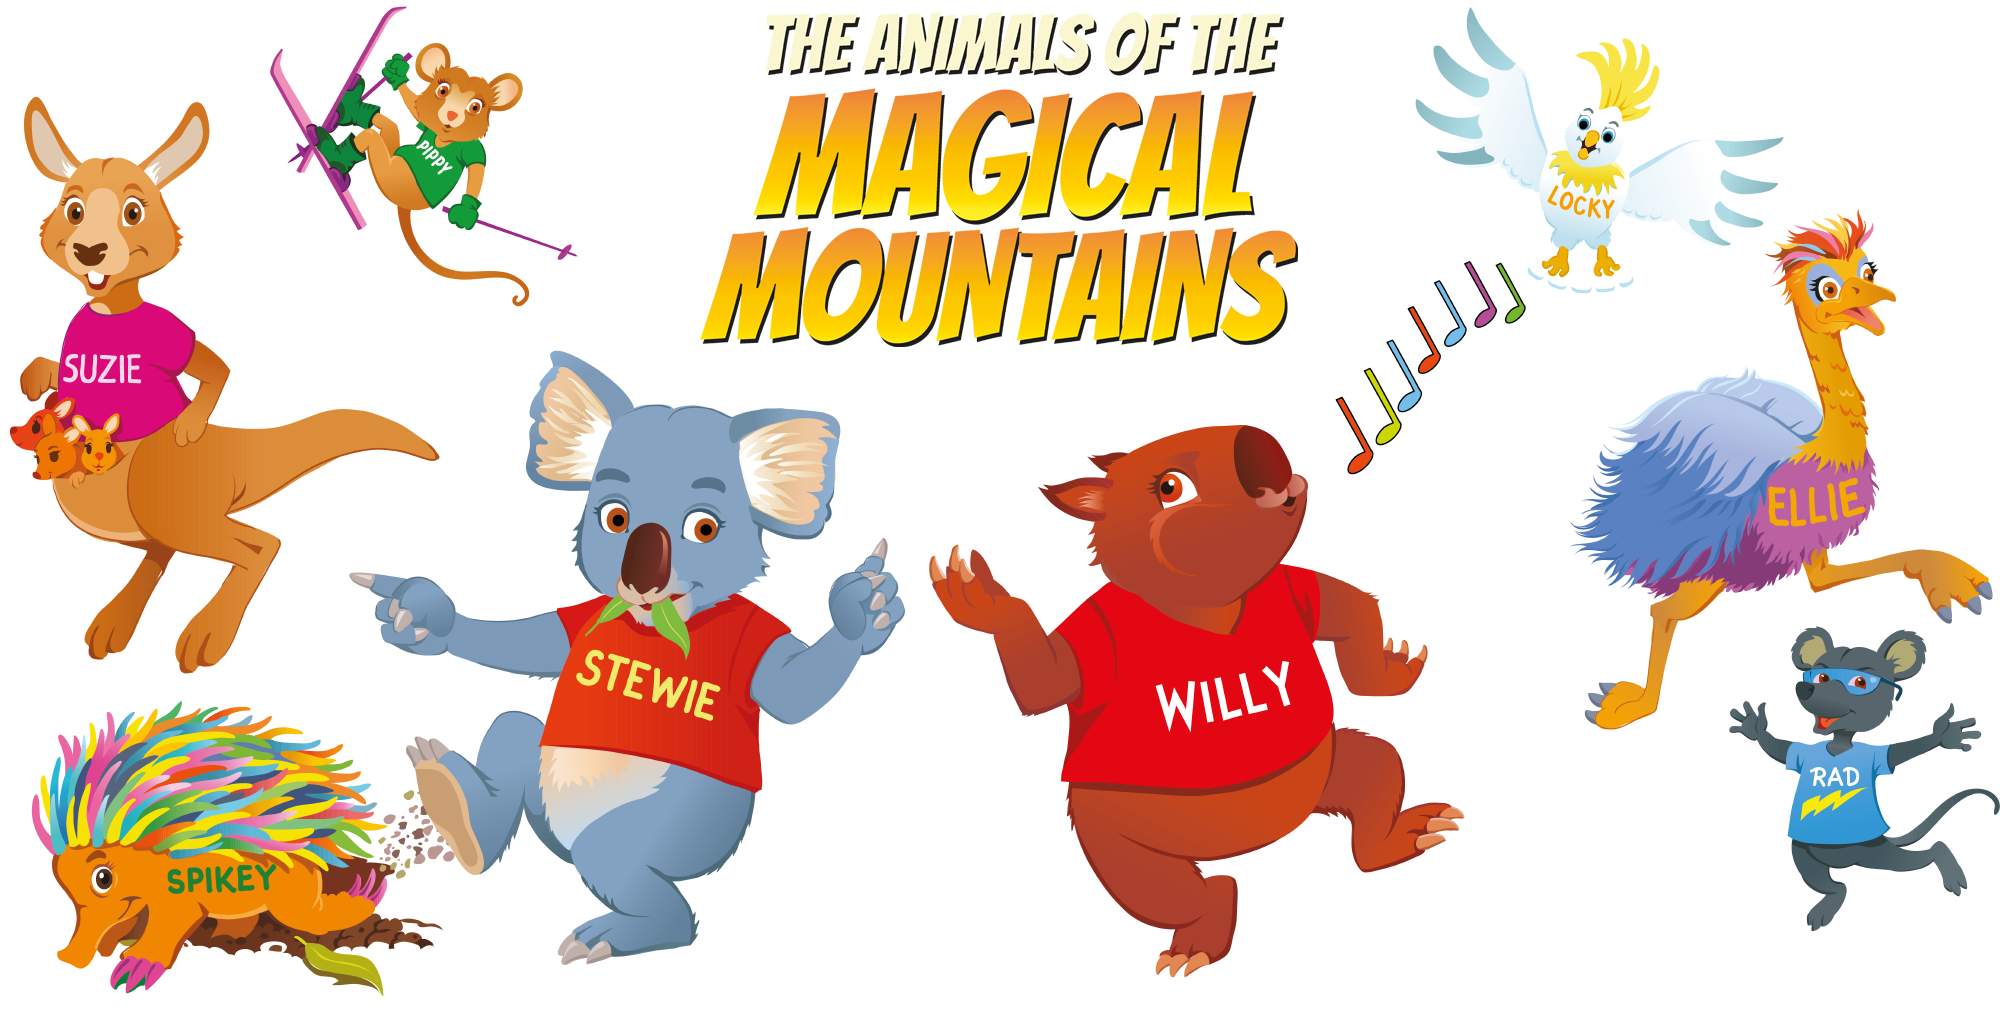 The Animals of The Magical Mountains